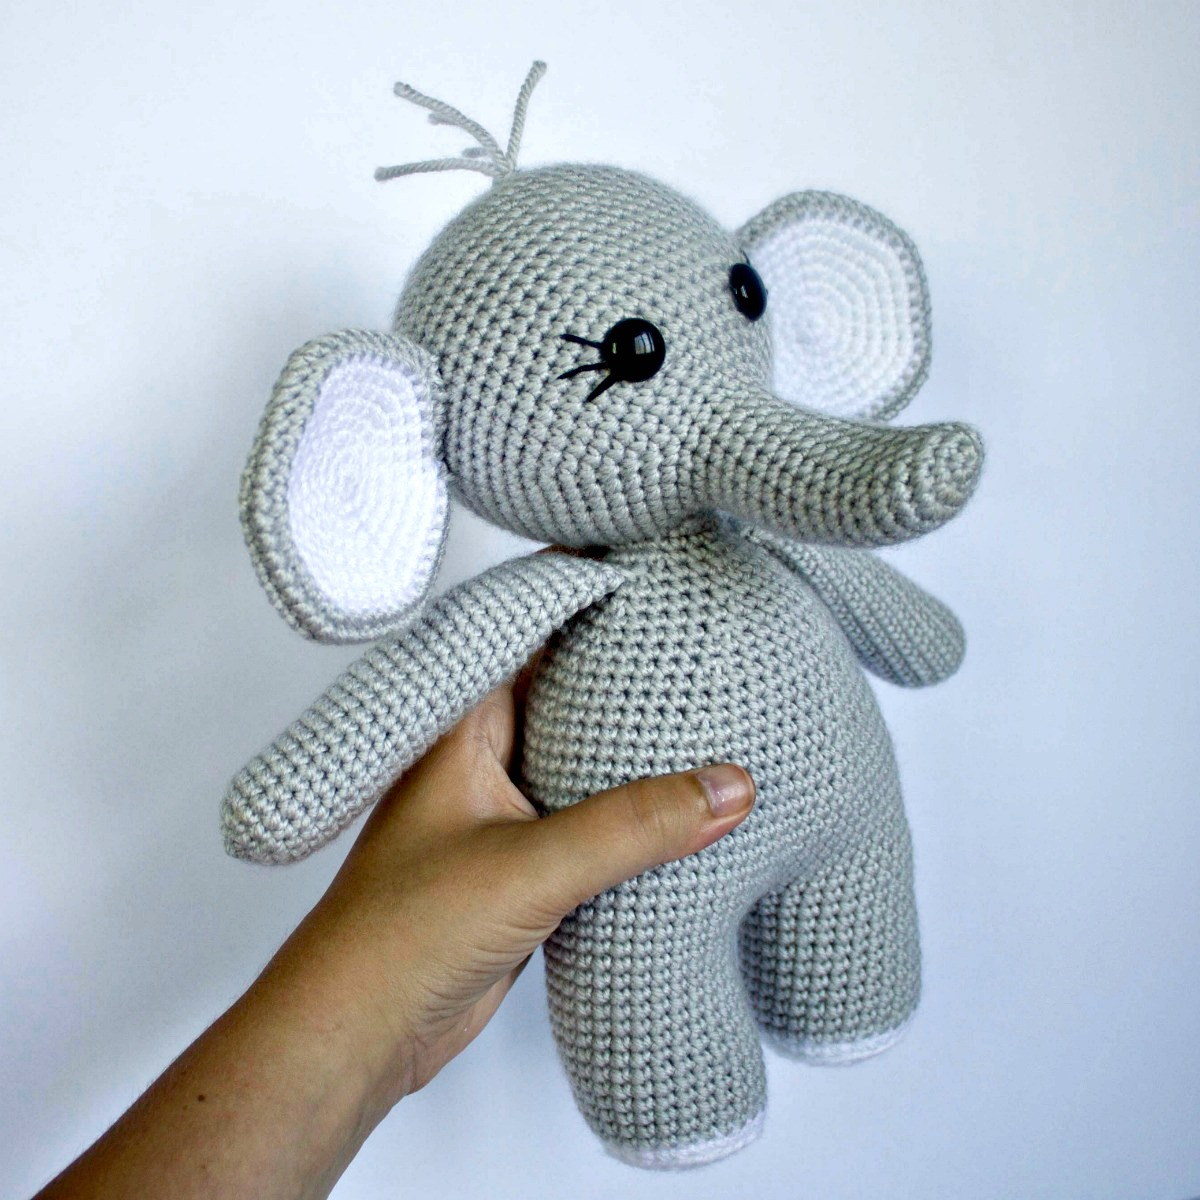 The Friendly Crochet Elephant-Part 1 - thefriendlyredfox com